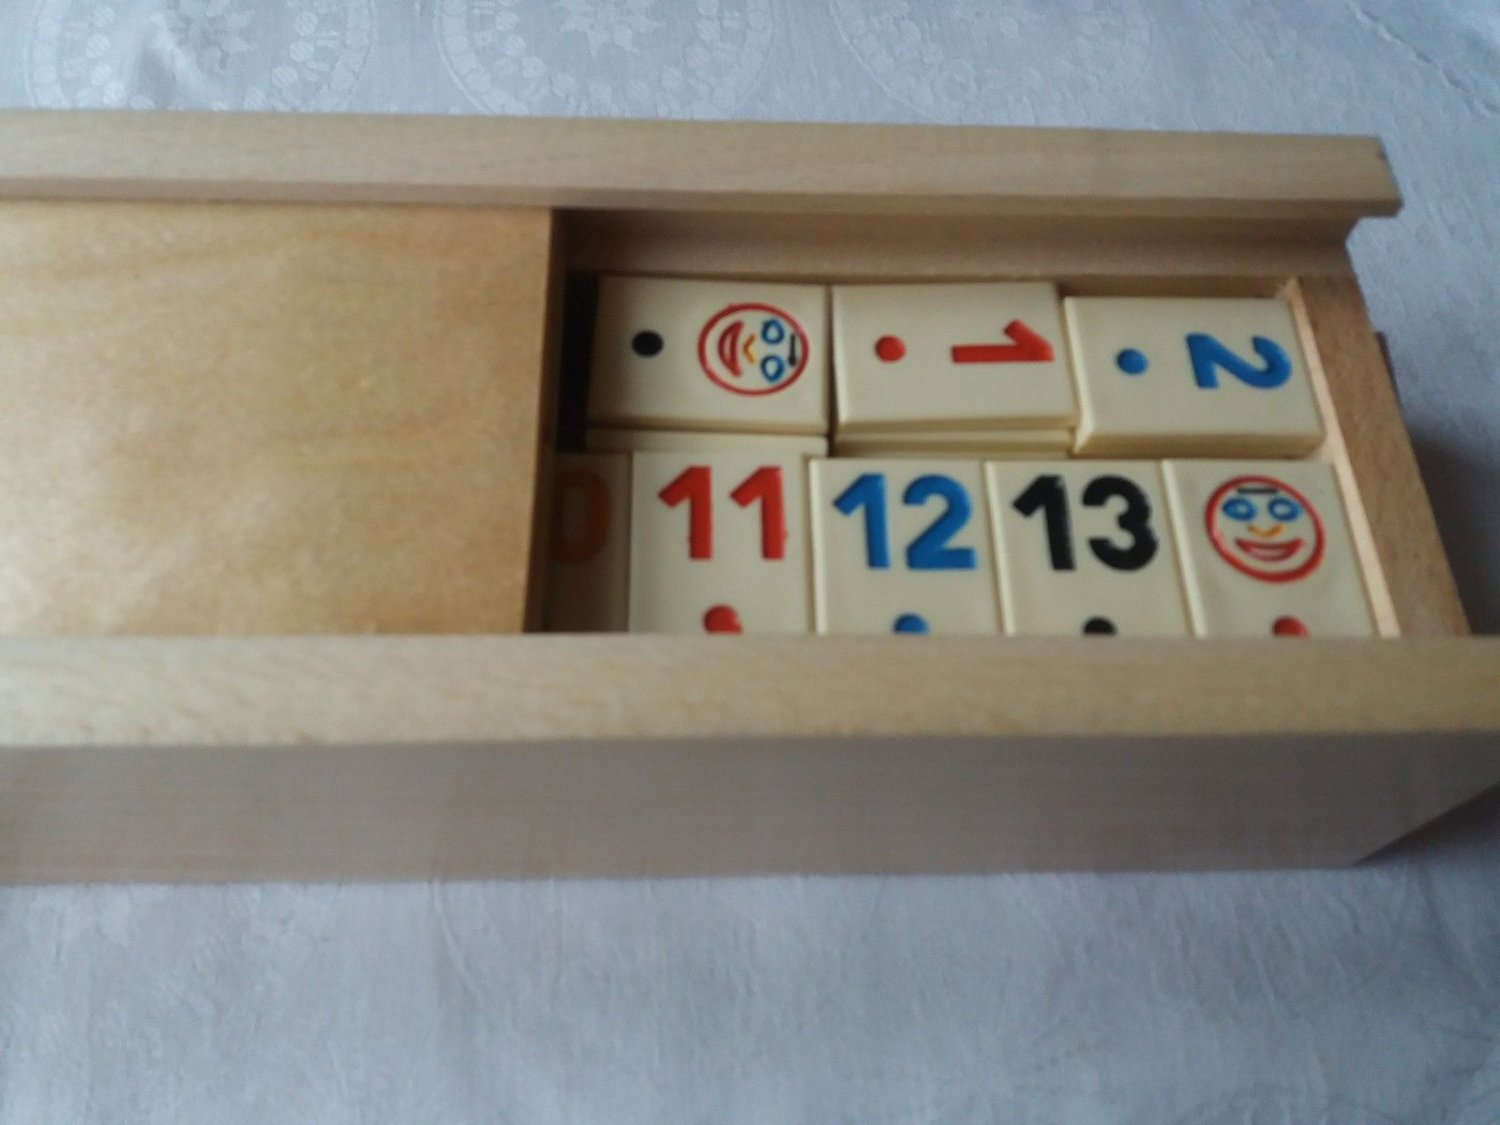 New big rummikub rummy beige piece travel strategy family board game wooden box